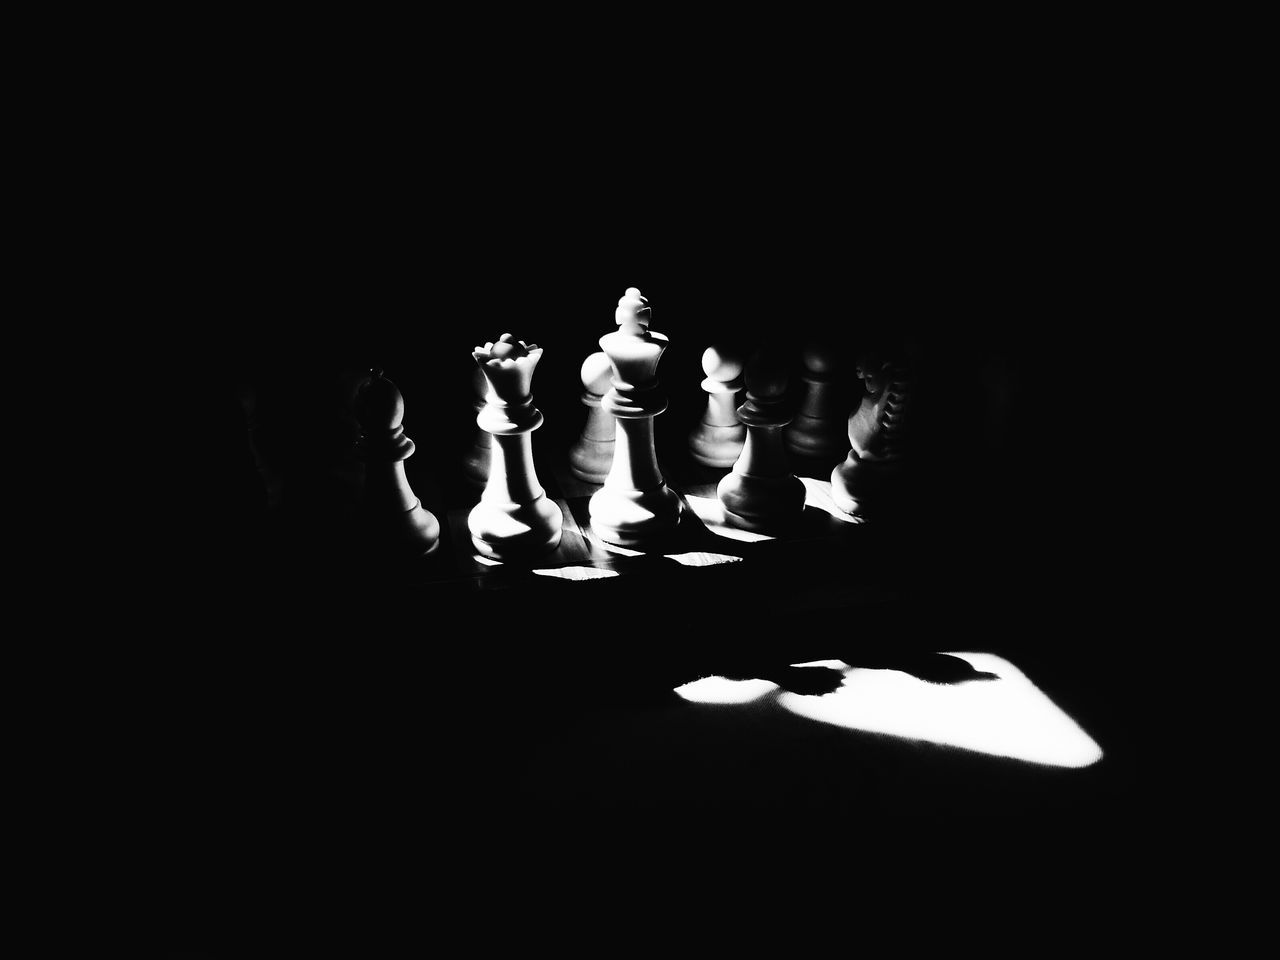 Sunlight On Chess Pieces On Chessboard